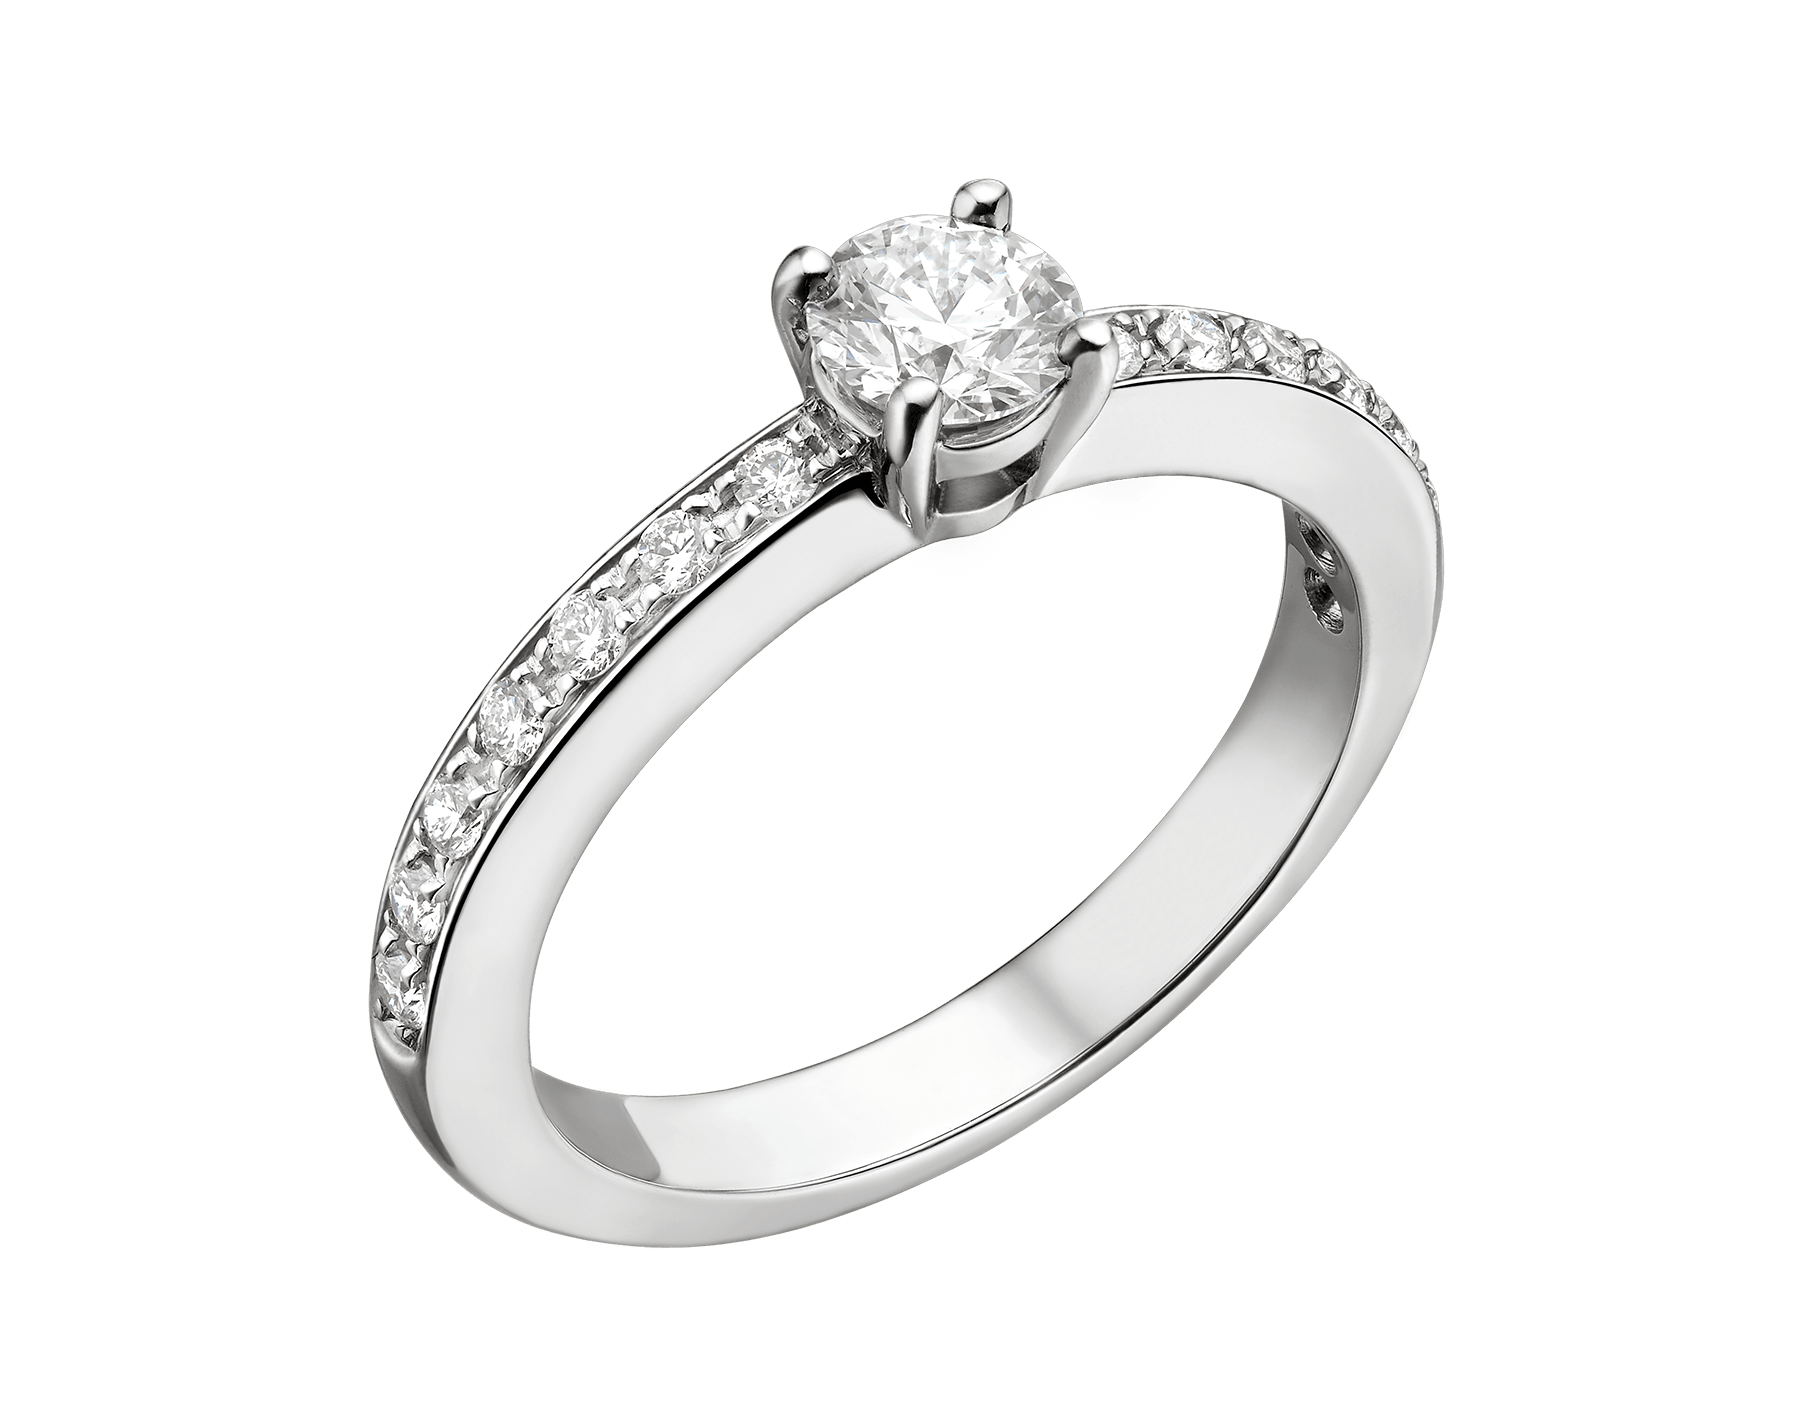 Griffe platinum round brilliant cut diamond and pavé diamond ring. Available from 0.30 ct. 340287 image 1